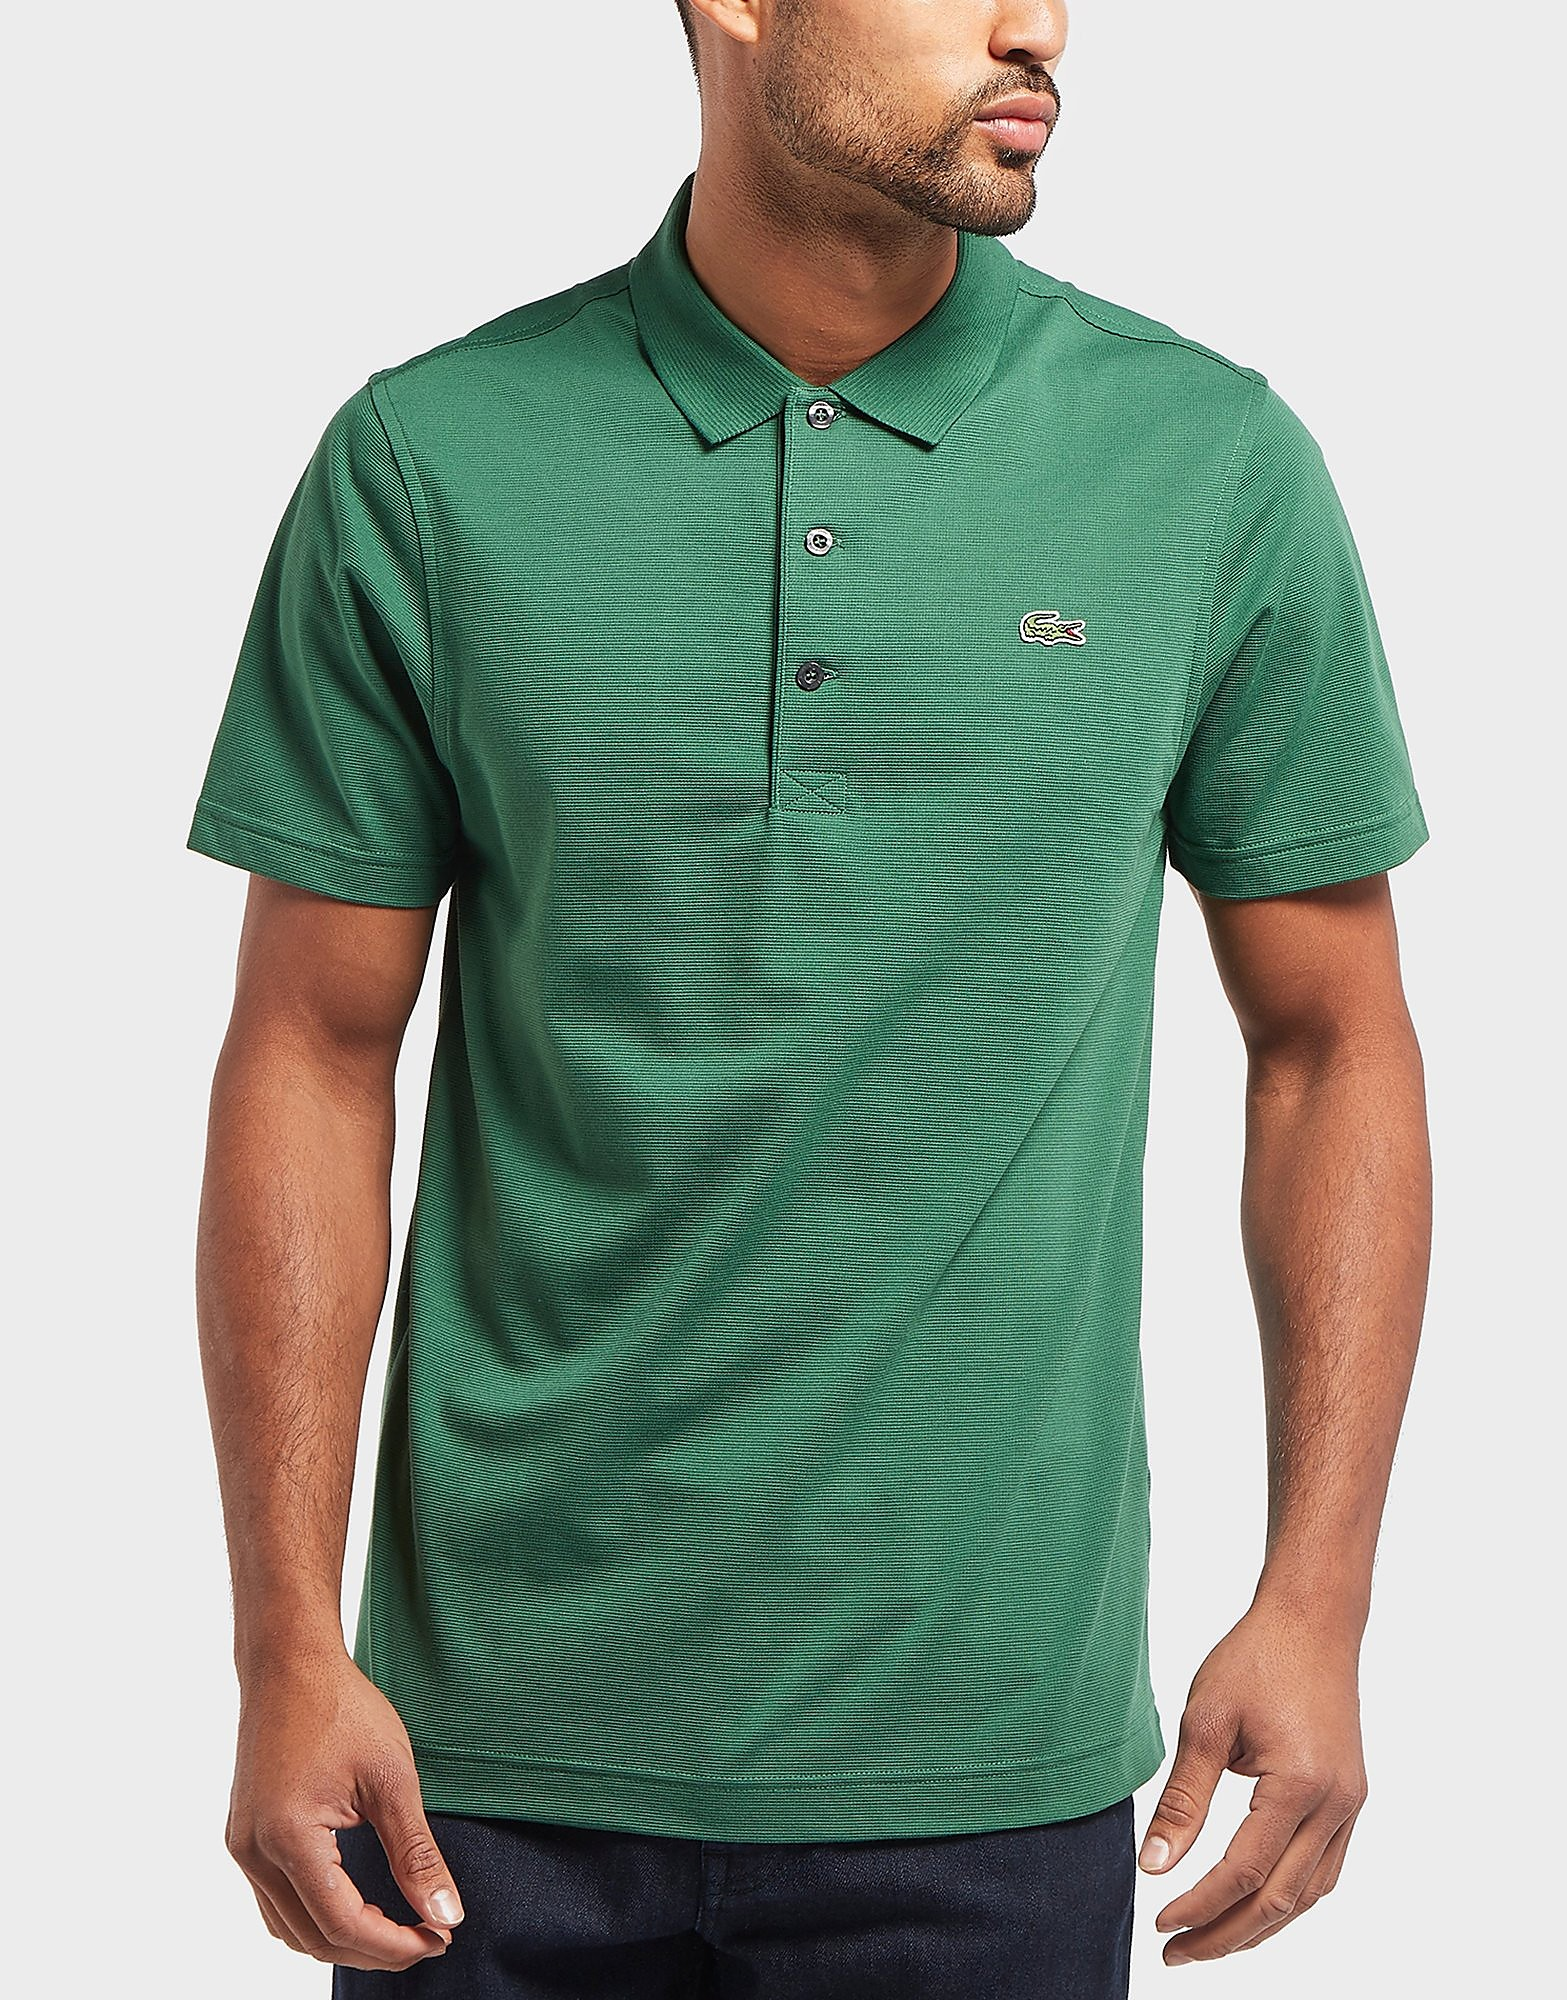 Lacoste Alligator Short Sleeve Polo Shirt